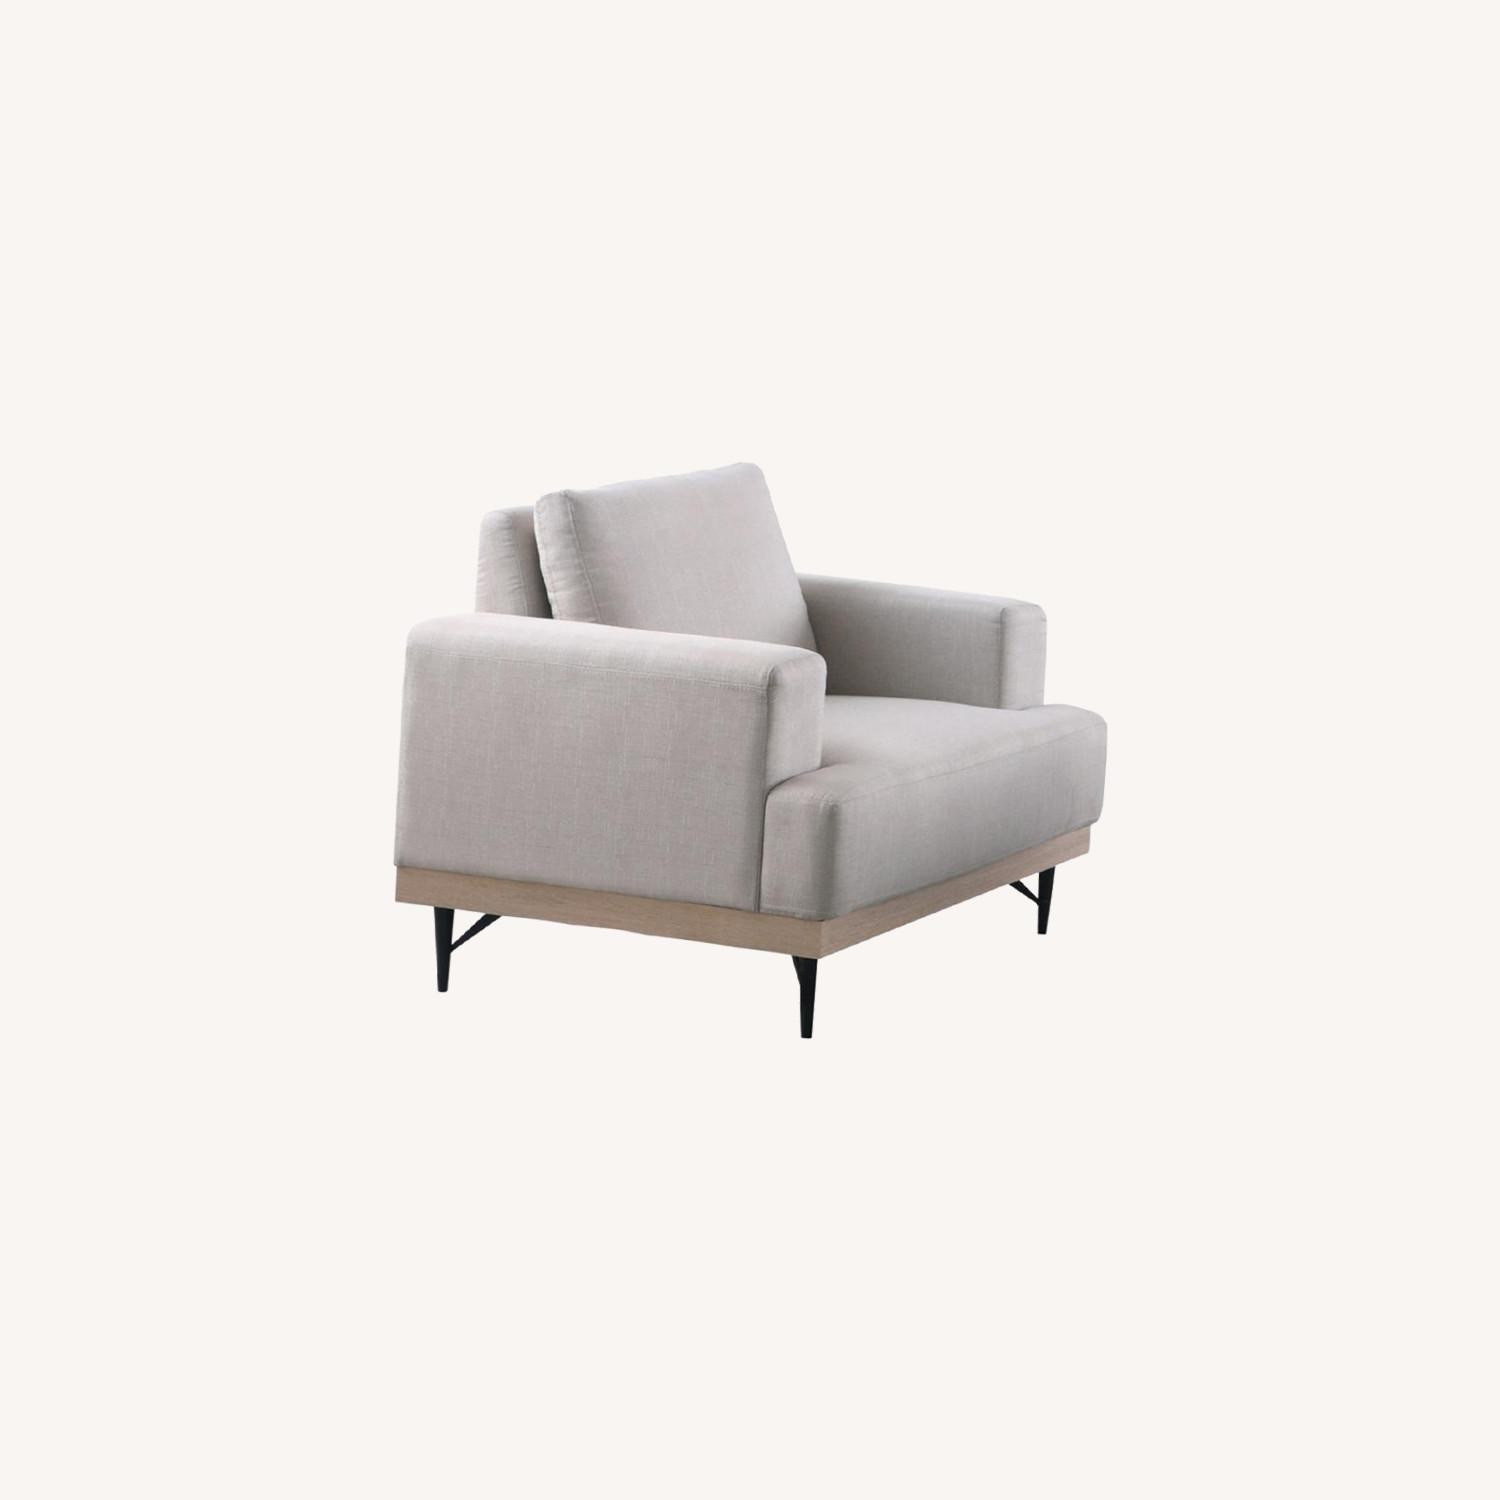 Chair In Beige Faux Linen W/ Pocket Coiled Seating - image-3